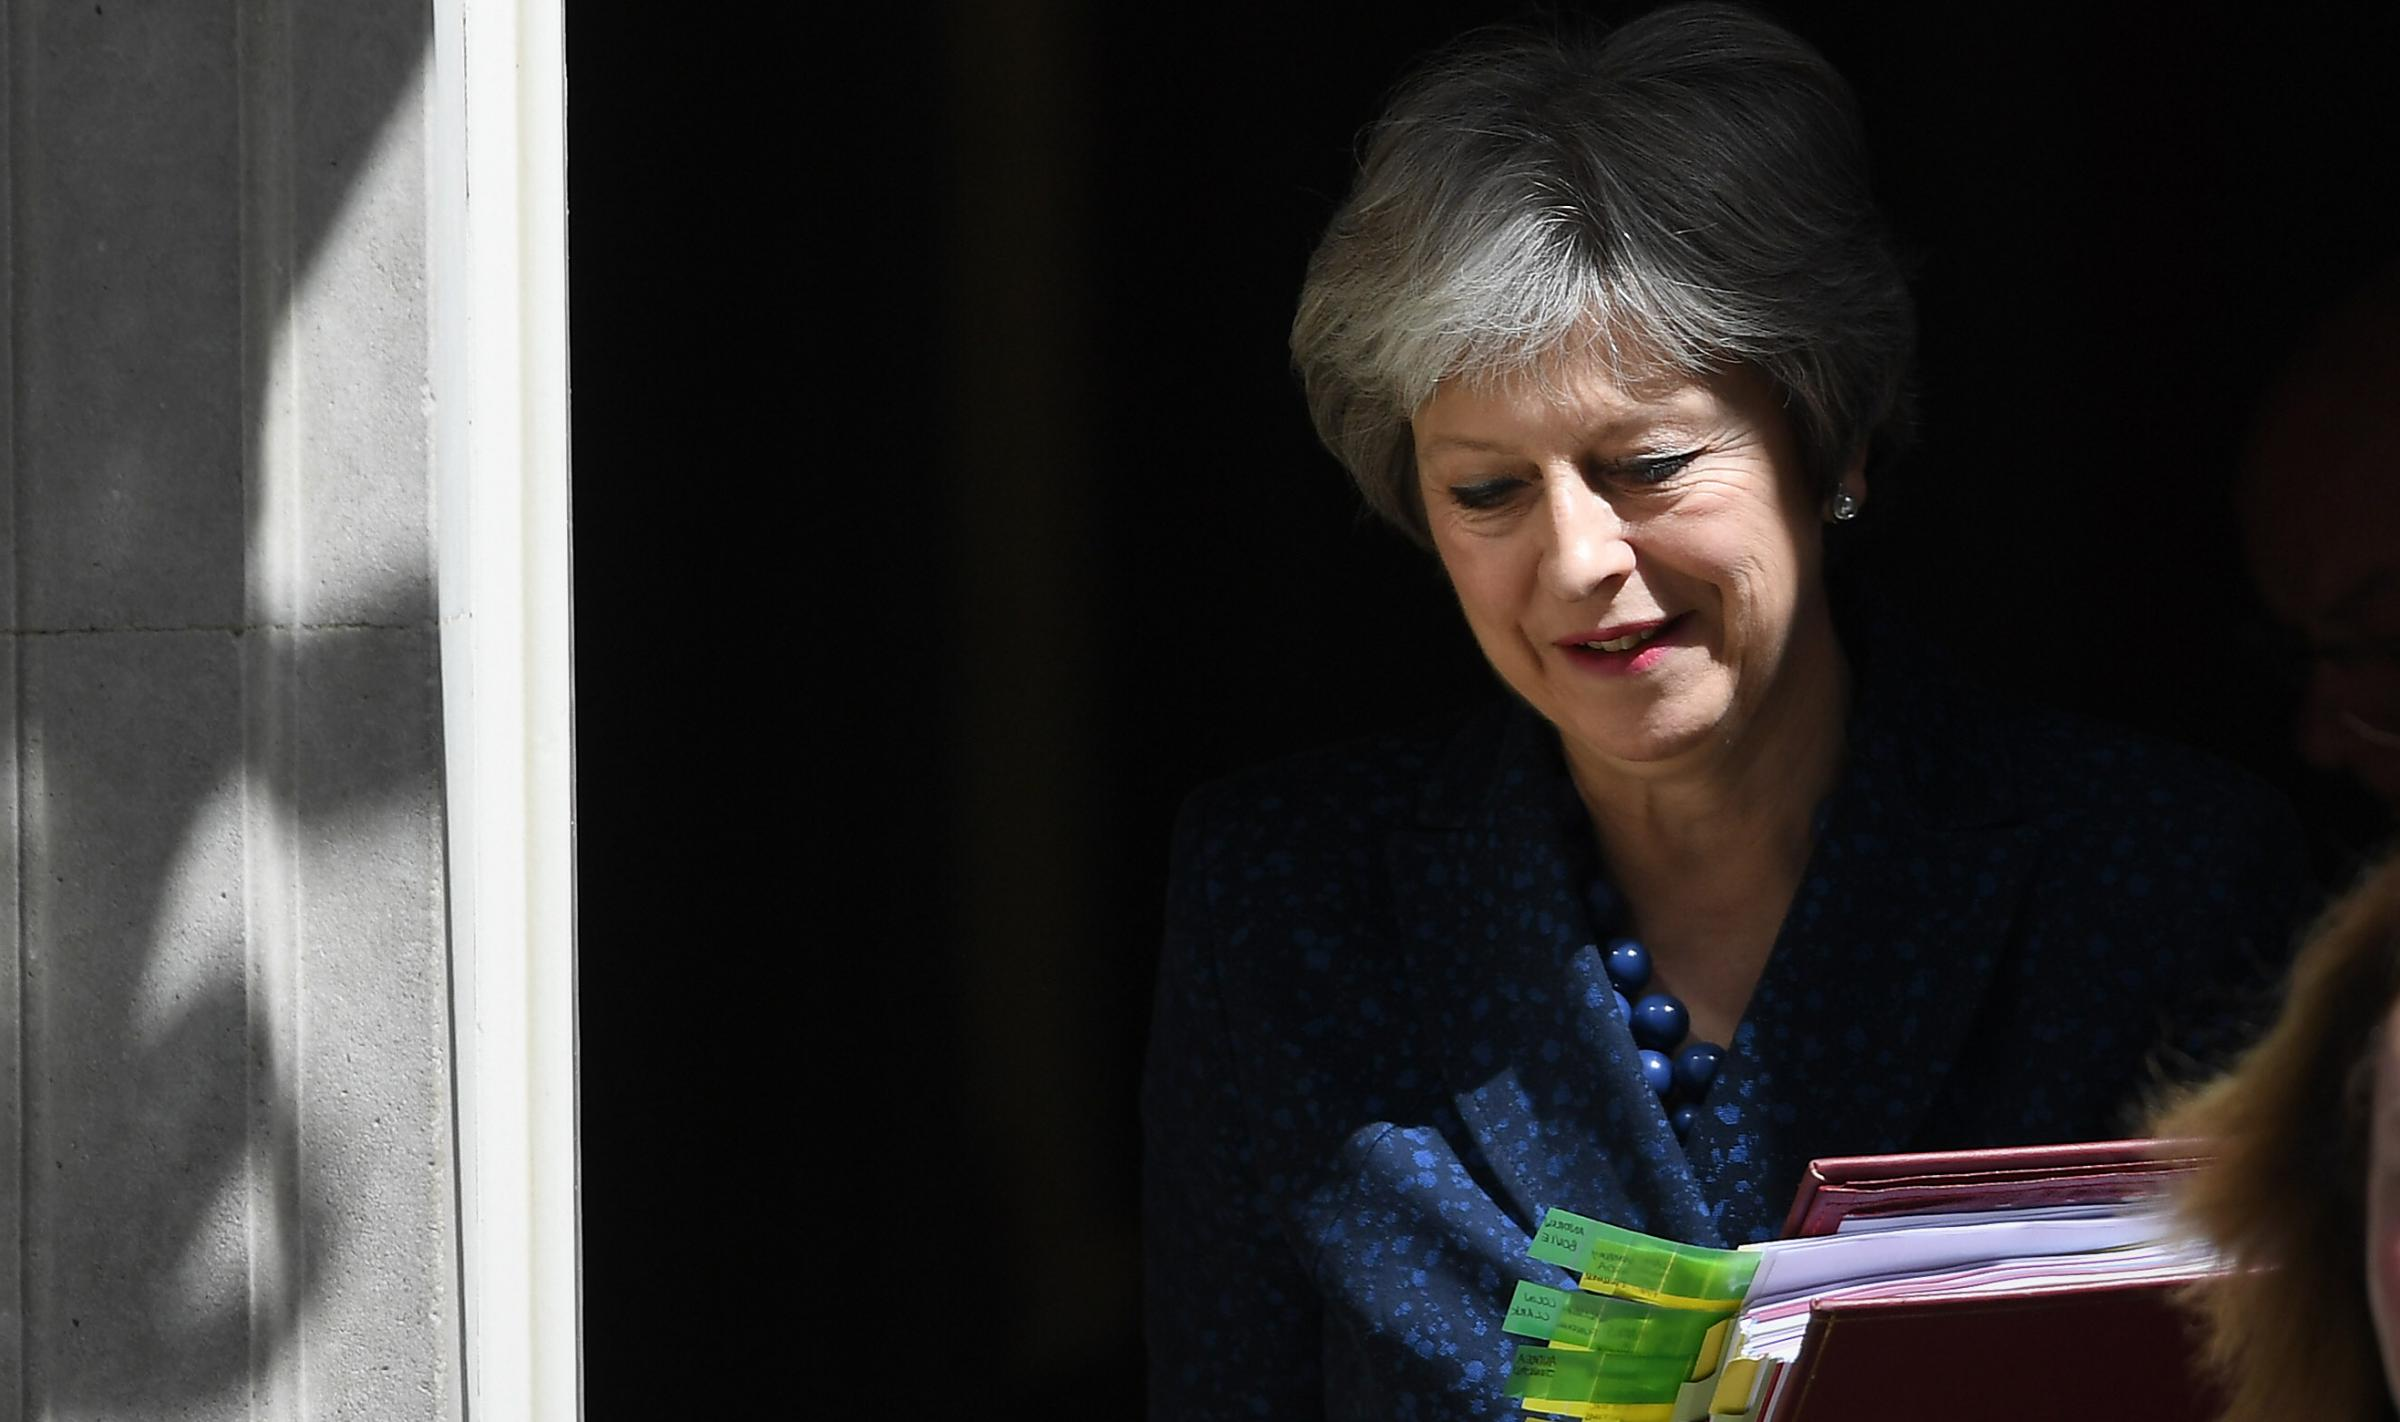 Theresa May had initially wanted the UK's future relationship with the EU to be open ended